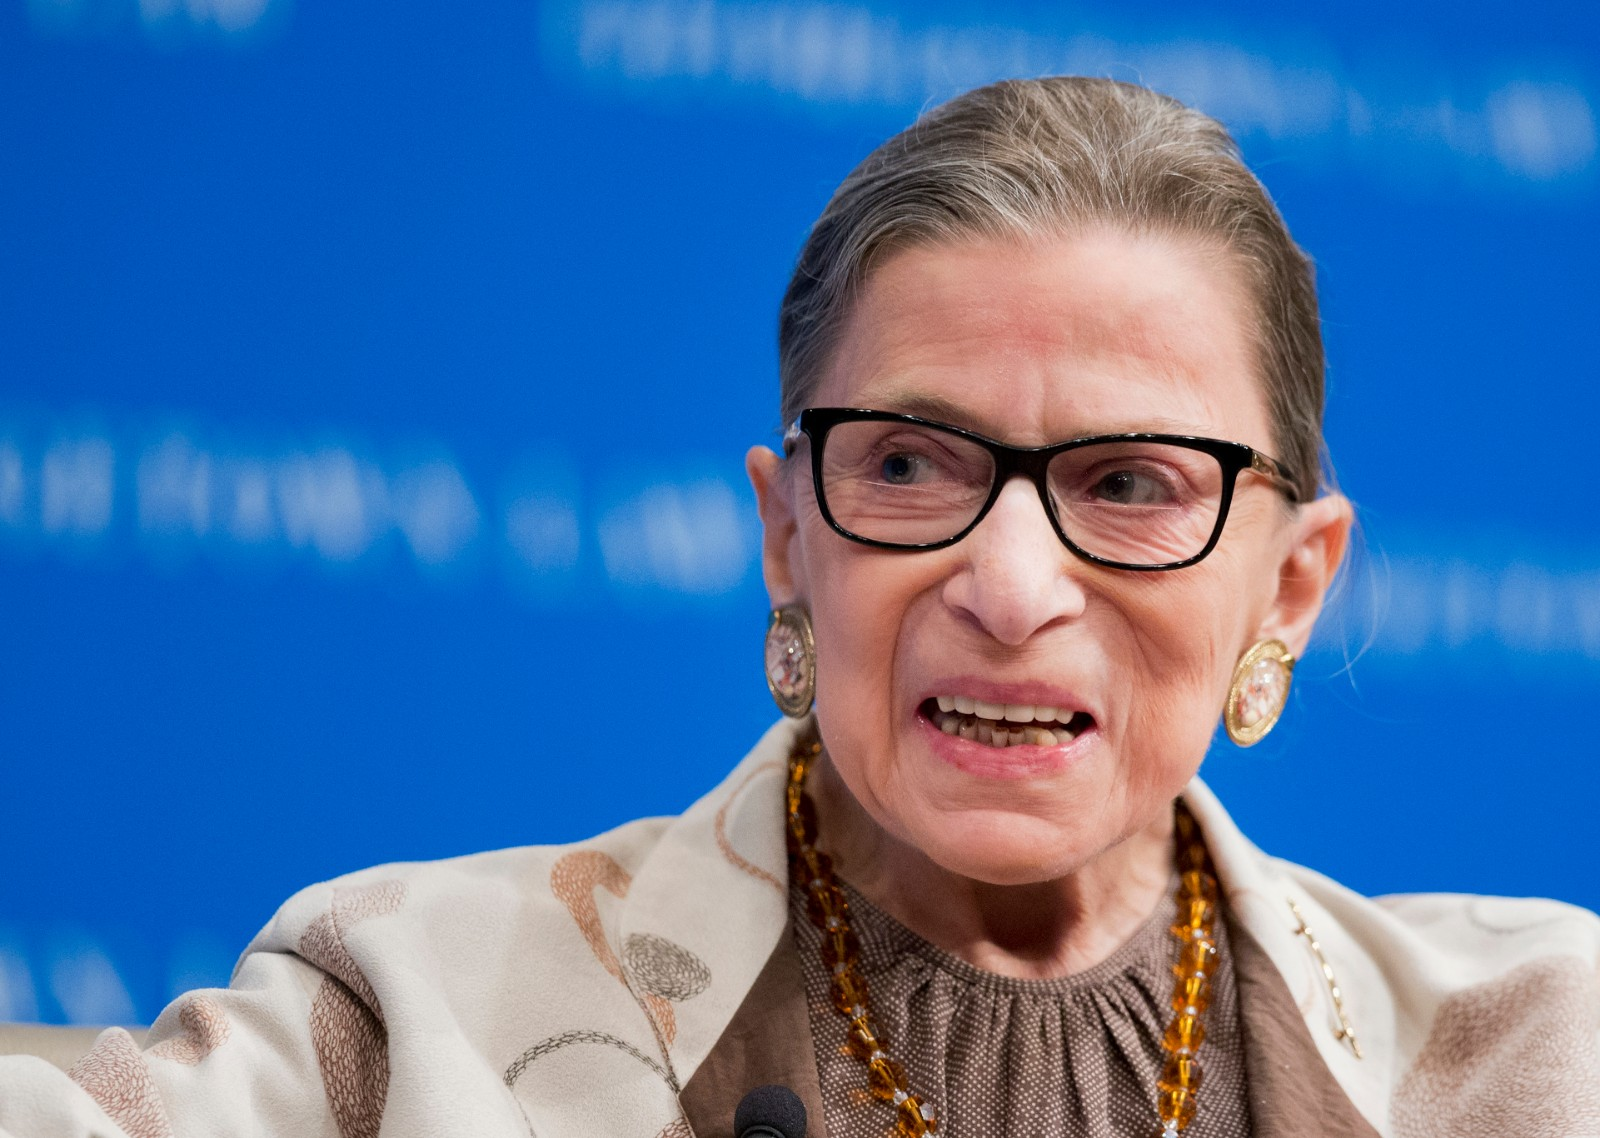 FILE - In this Feb. 4, 2015 file photo, Supreme Court Justice Ruth Bader Ginsburg speaks at Georgetown University Law Center in Washington. Ginsburg's public criticism of Donald Trump is dividing legal experts over whether the leader of the court's liberal wing should recuse herself in any future case involving him.  (AP Photo/Manuel Balce Ceneta, File)